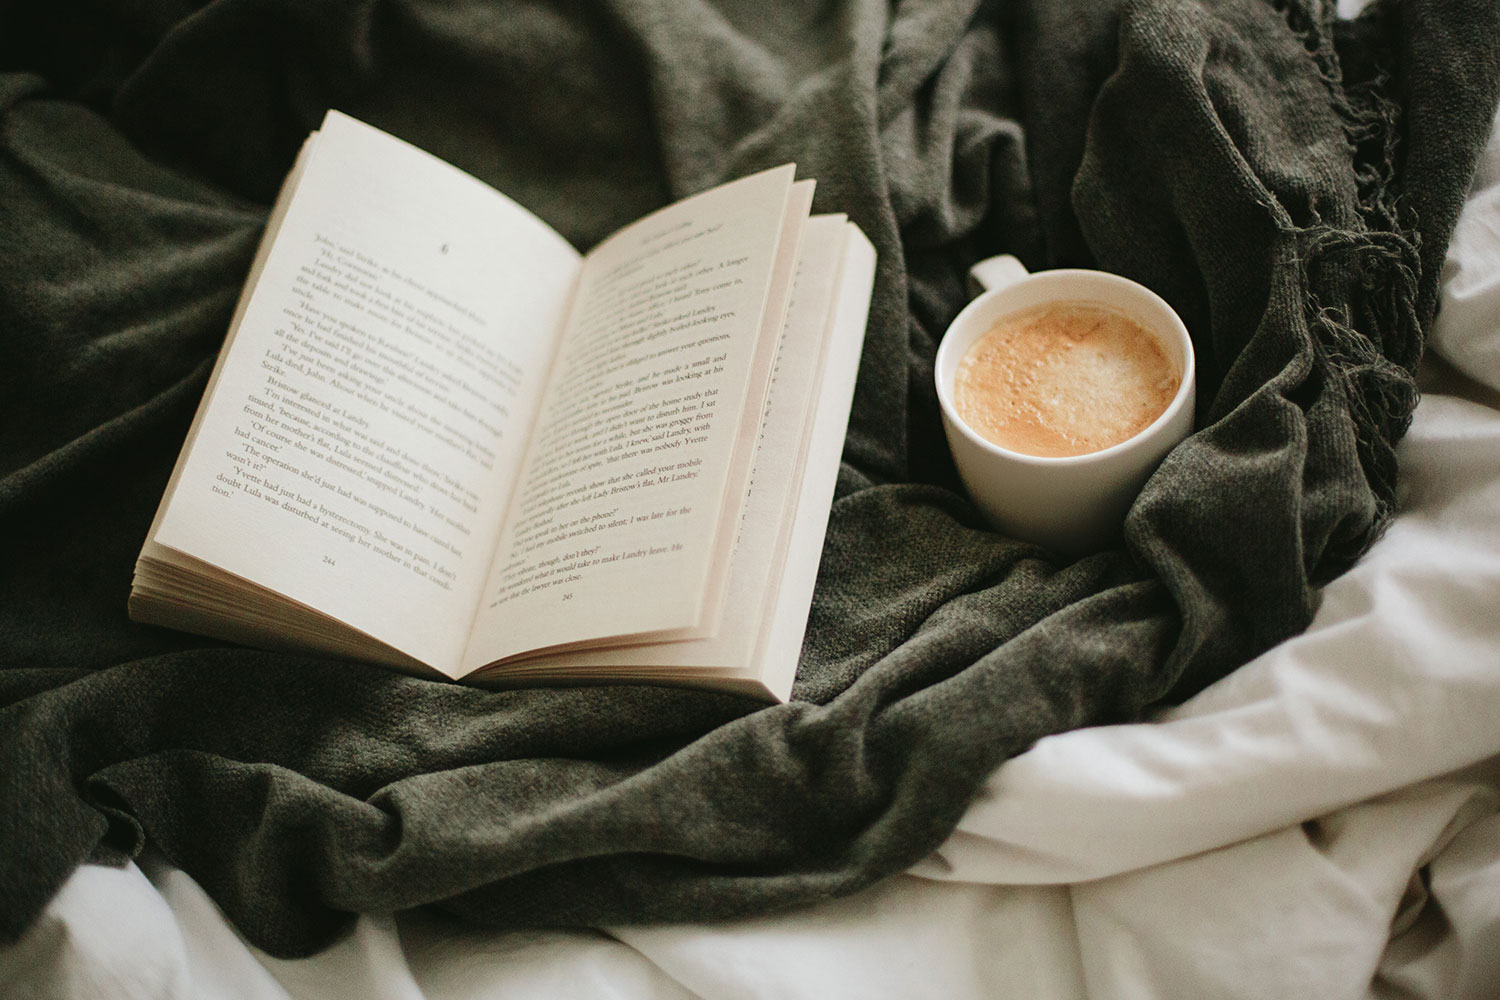 book and coffee mug on top of a bed